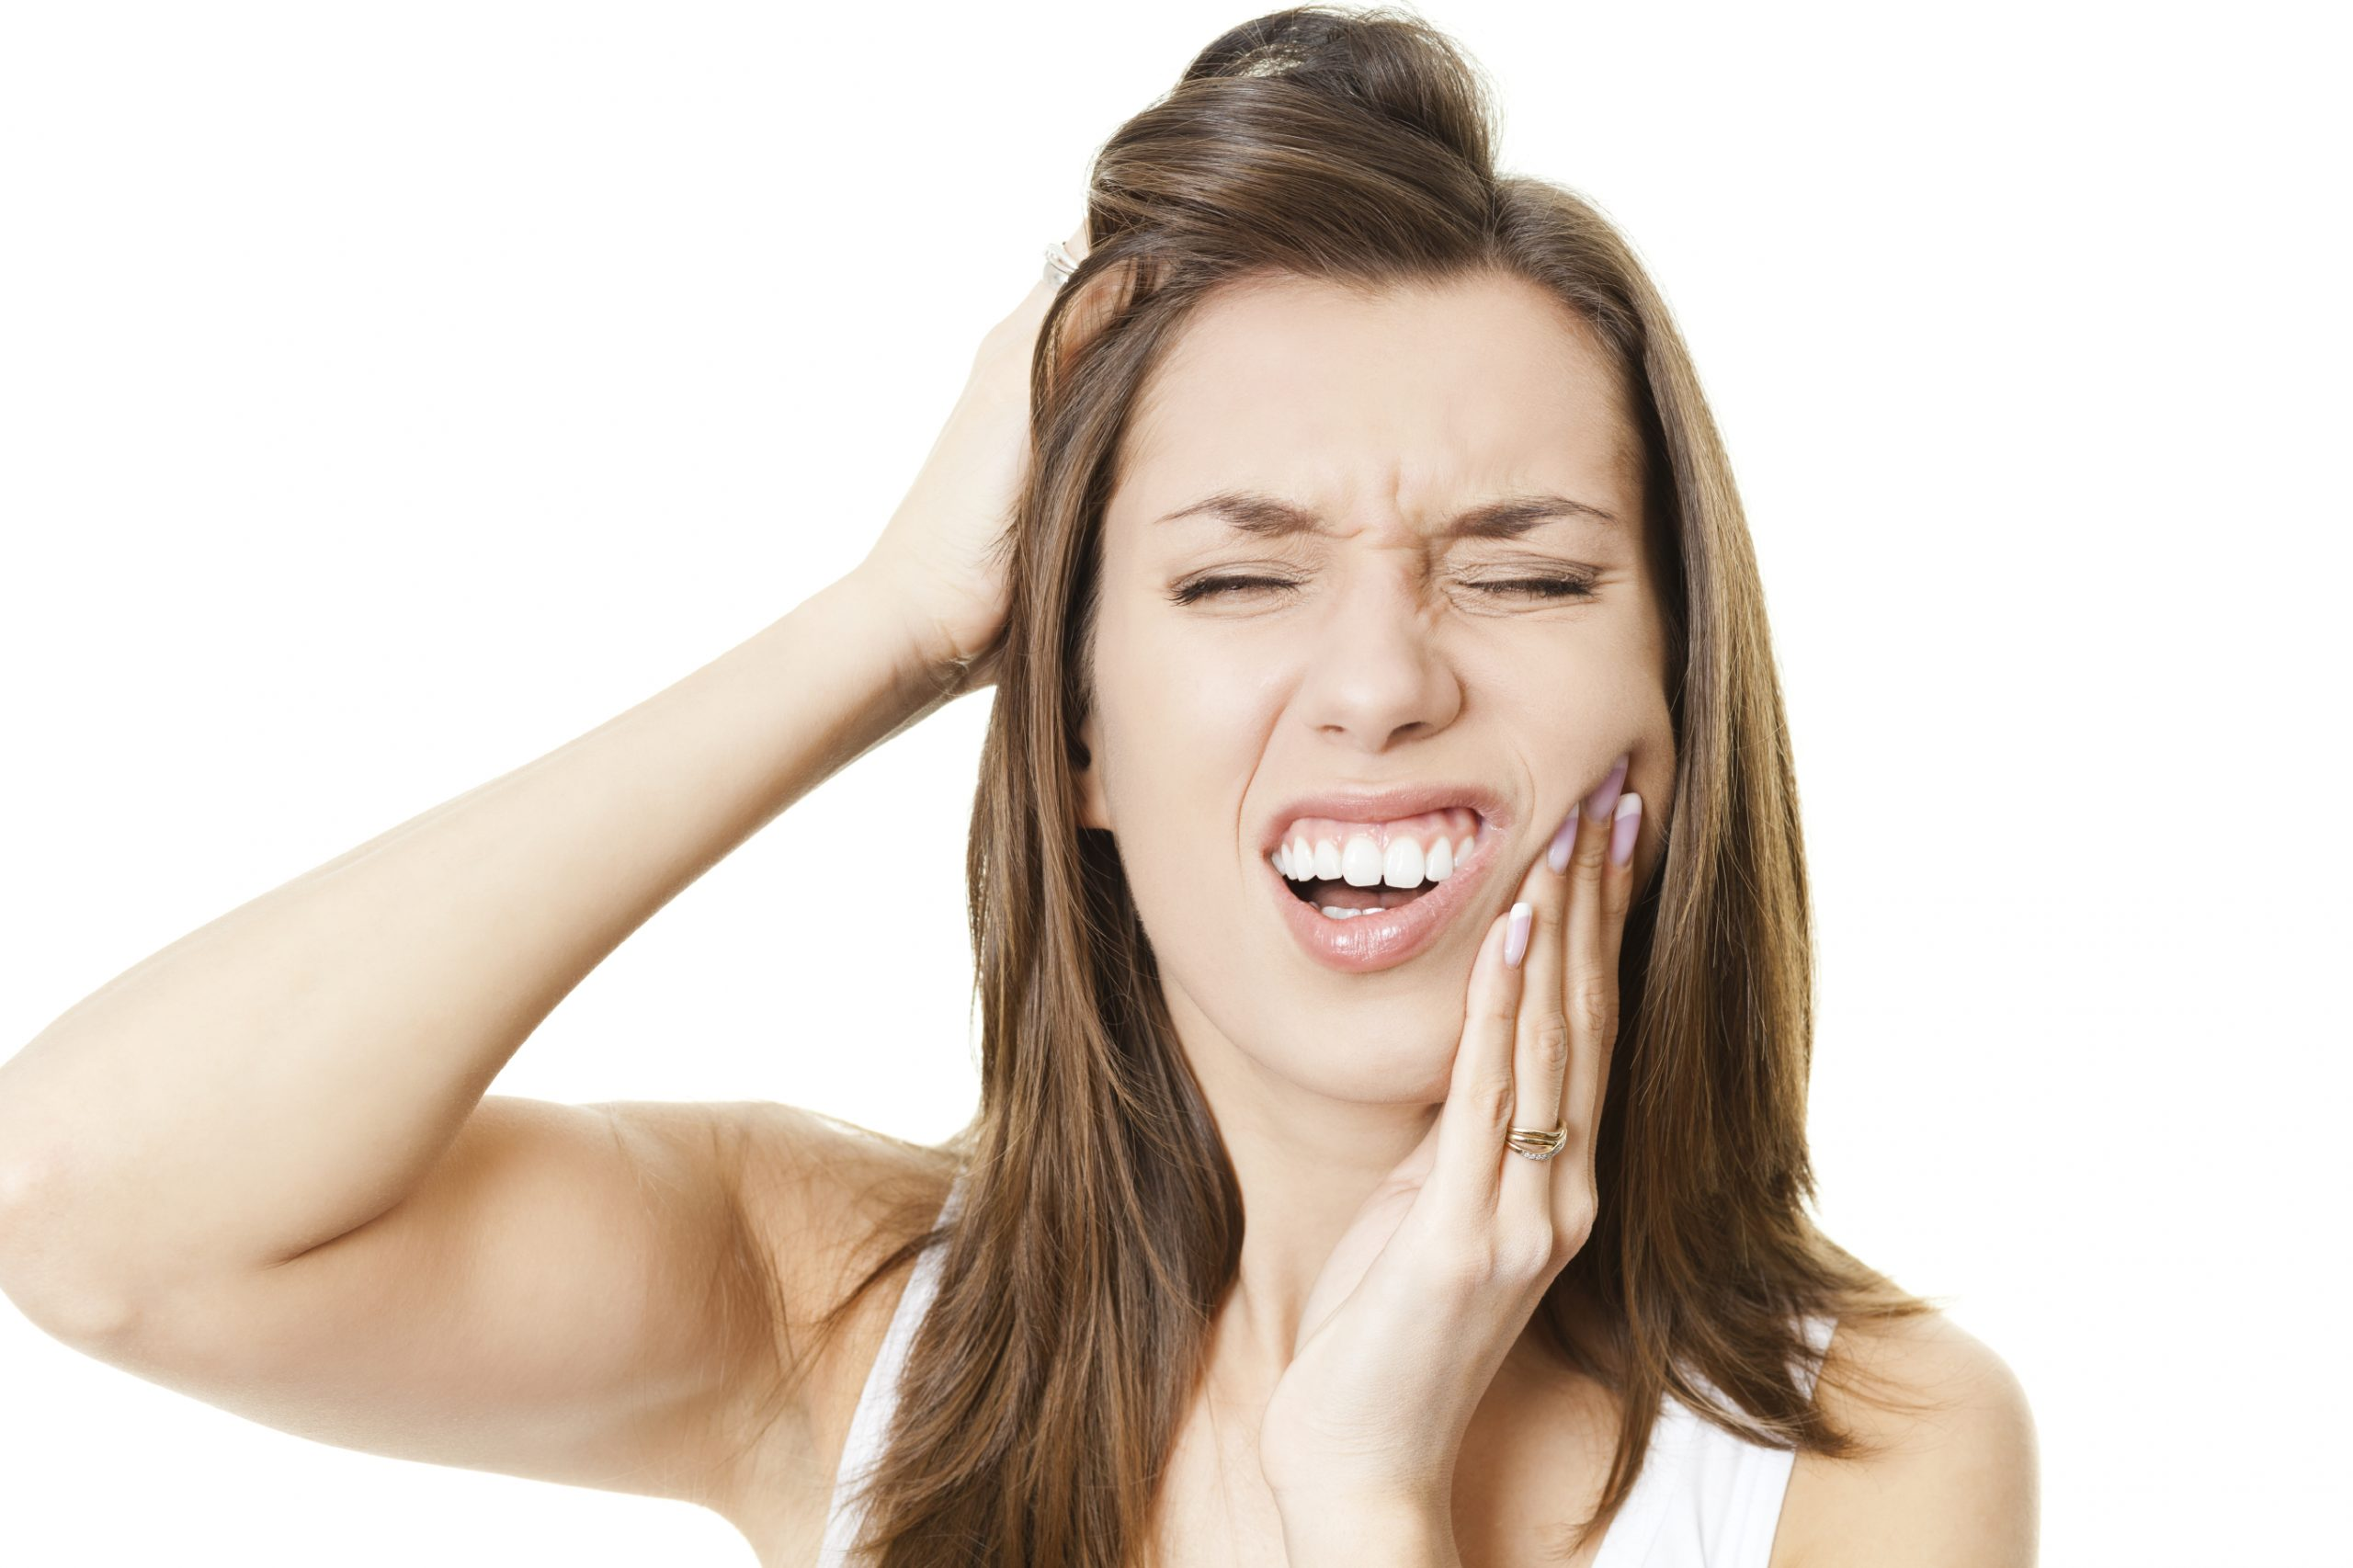 Woman in pain because of wisdom teeth